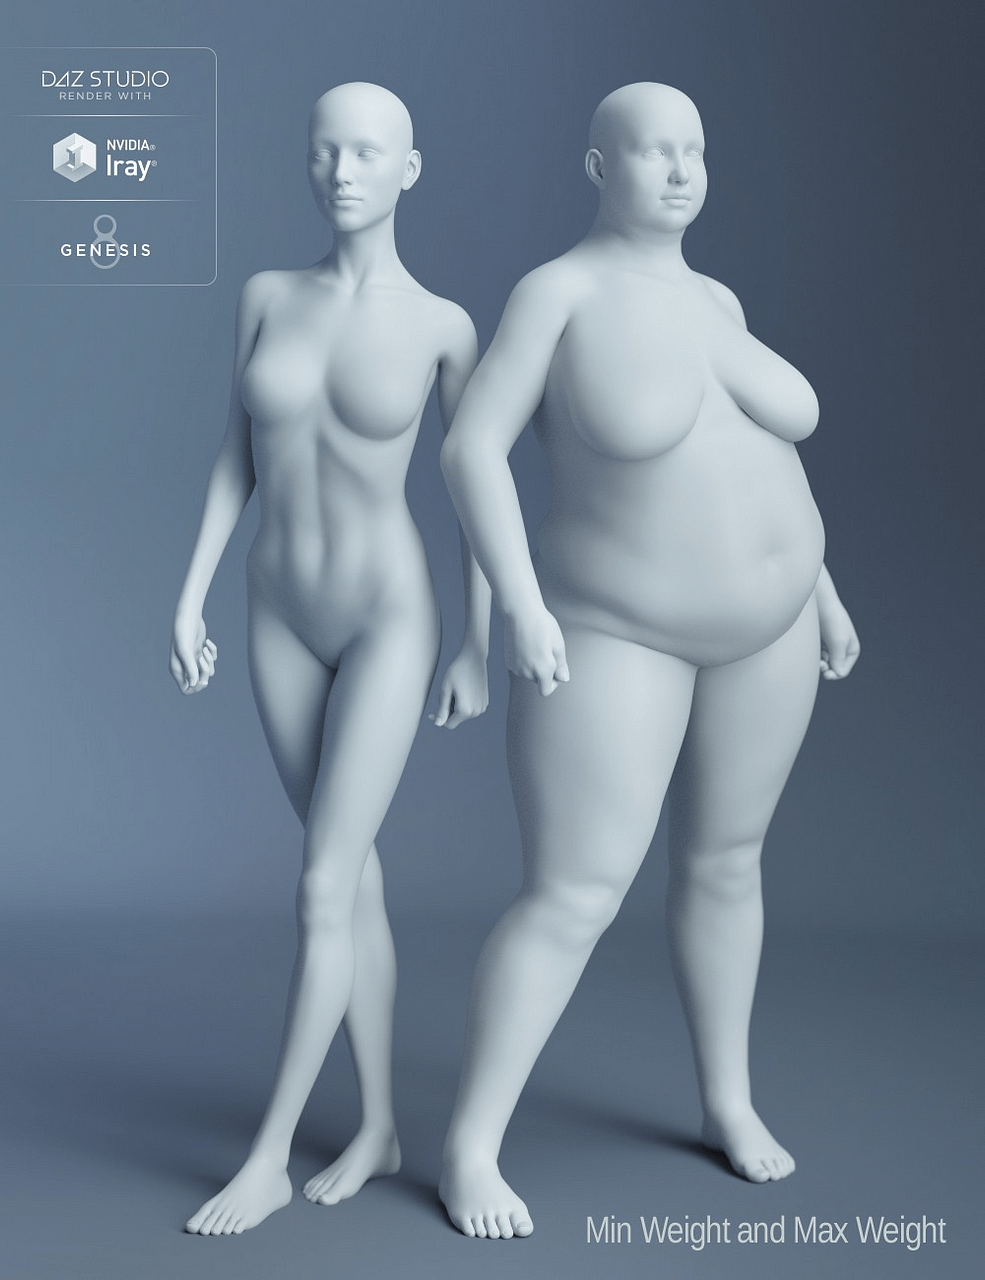 daz3d genesis 8 female body morphs